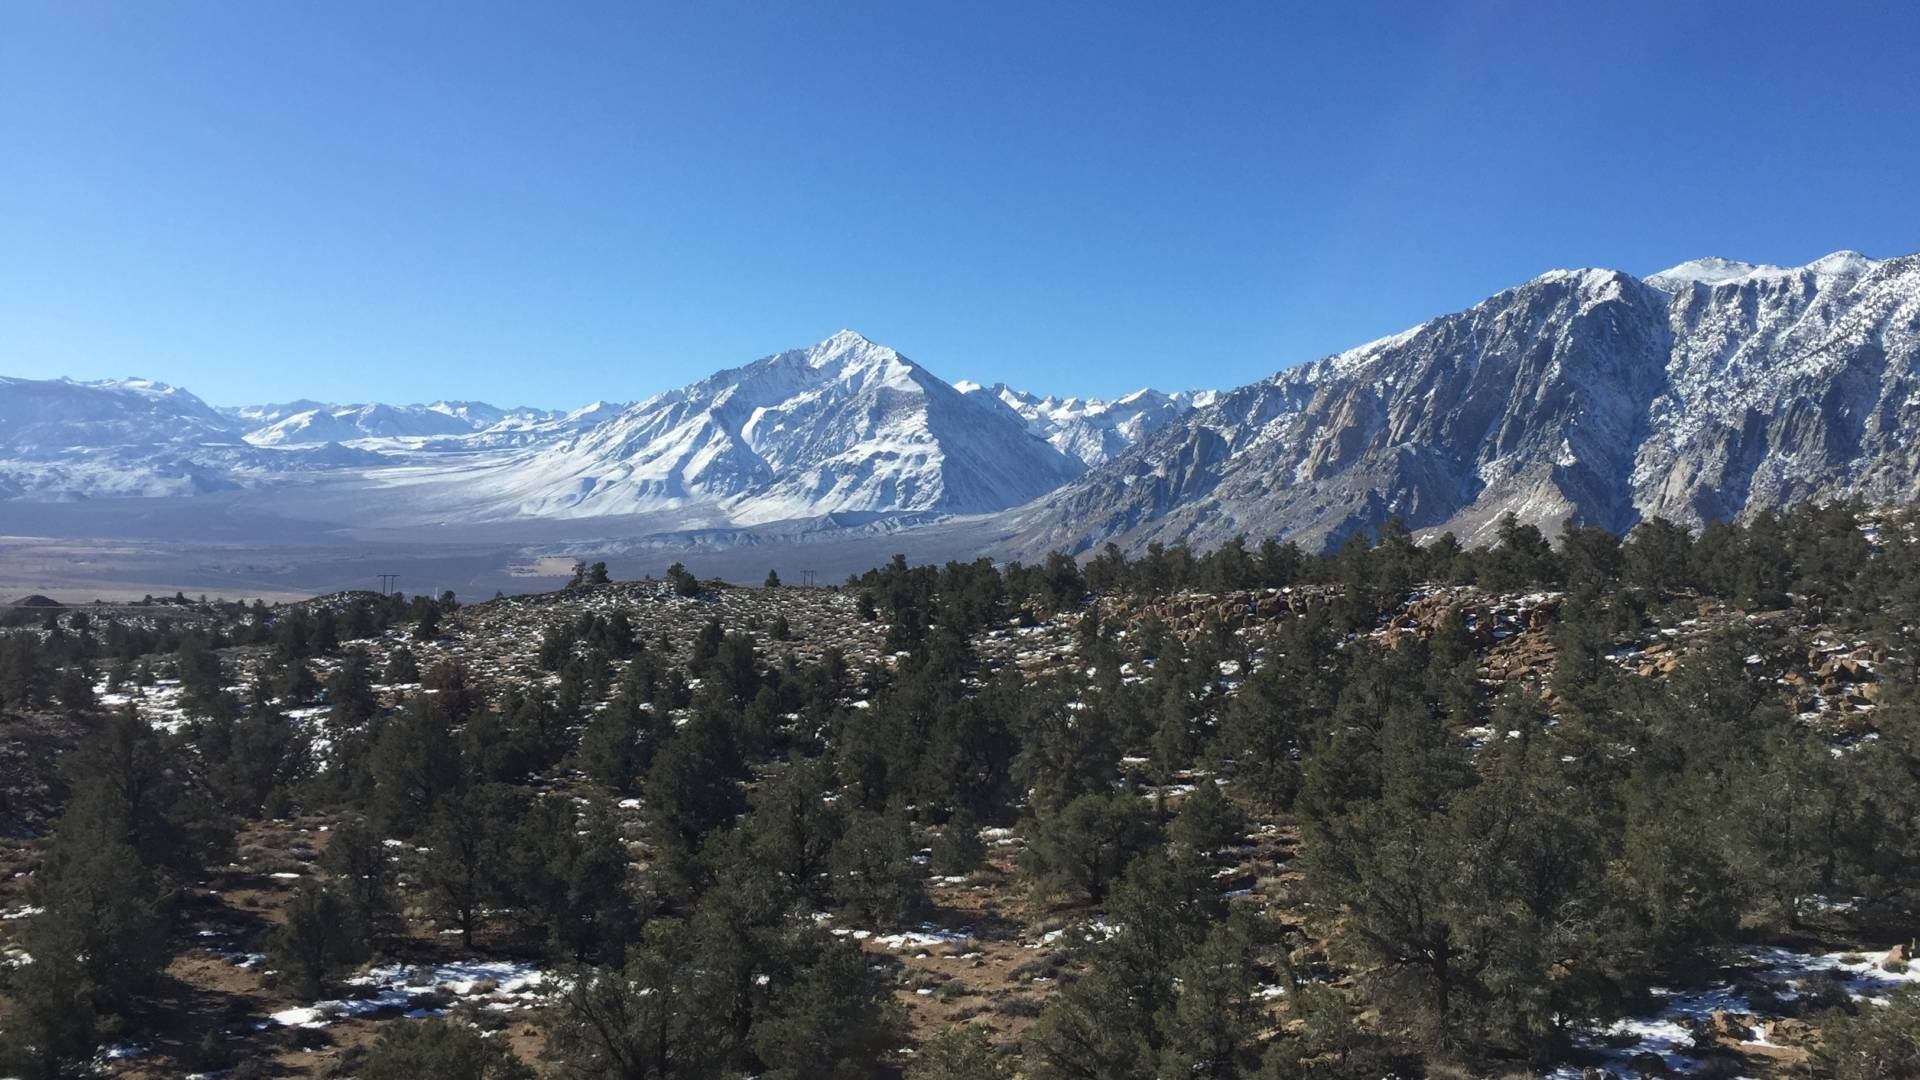 The Eastern Sierra Nevada  near Mammoth Lakes. The town is surrounded by U.S. Forest Service and Bureau of Land Management land and, with the government shutdown, 'the landlords are absent.' Kirk Siegler/NPR